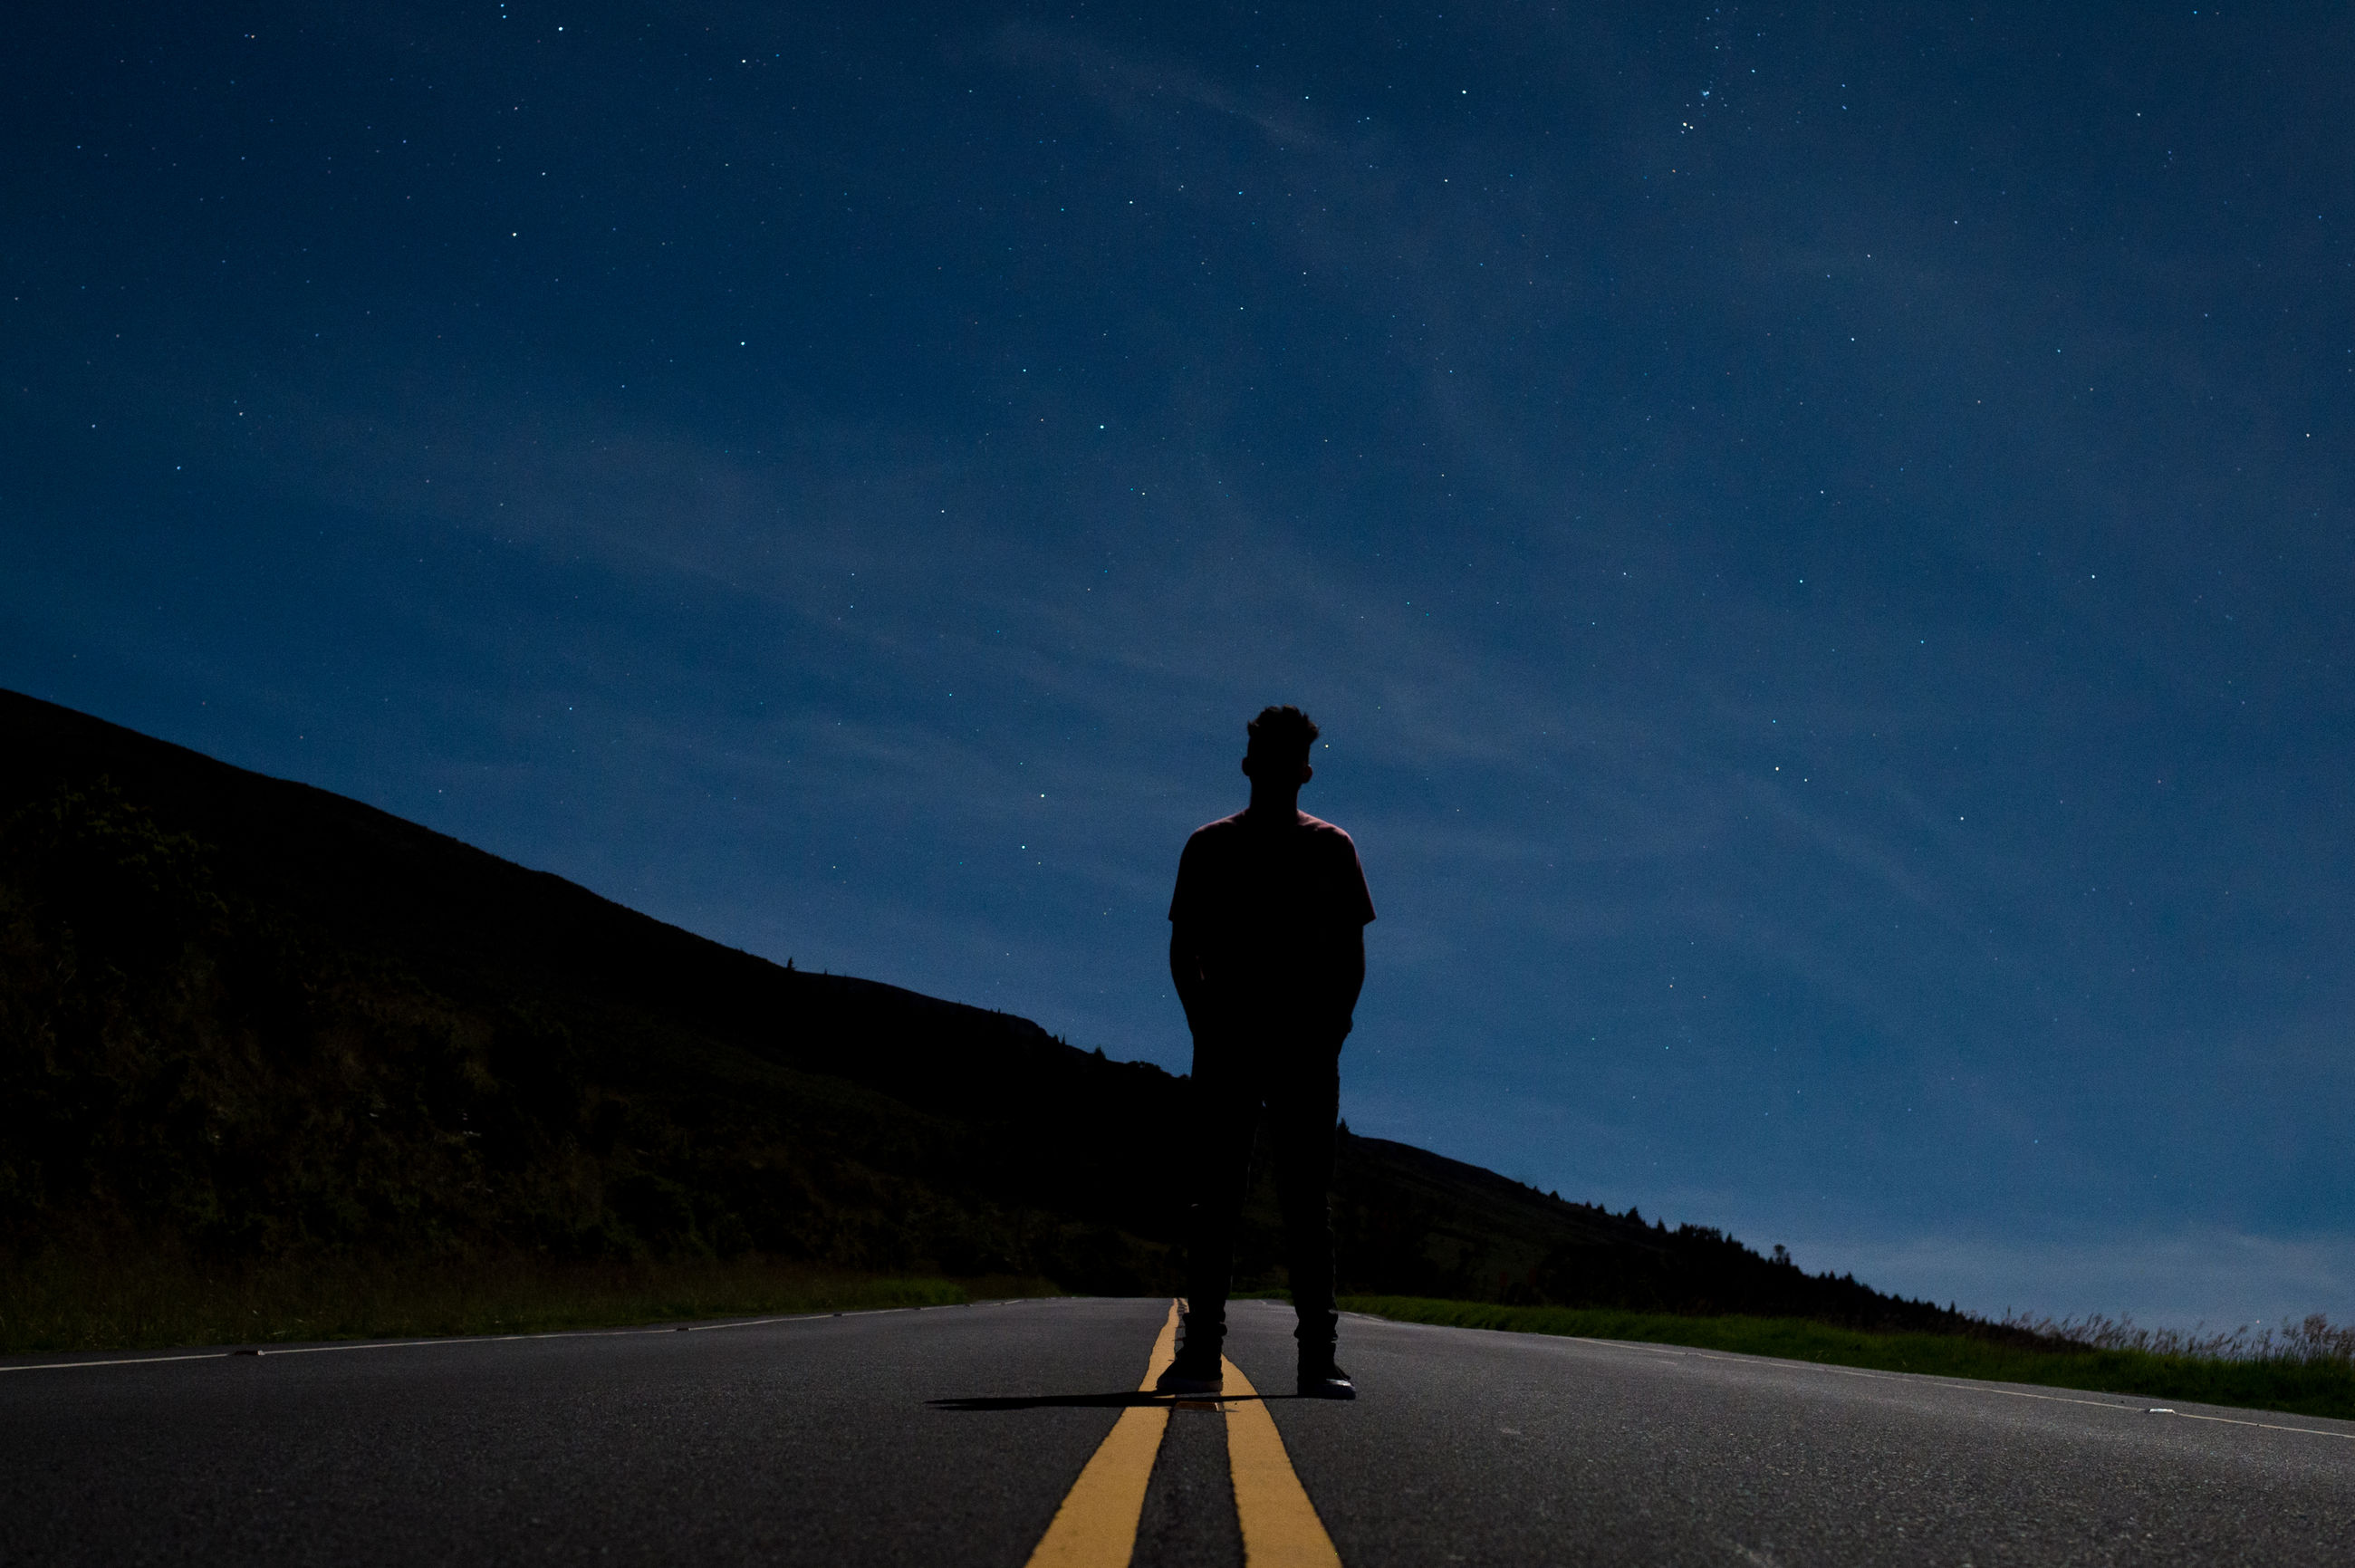 road, one person, real people, the way forward, night, star - space, full length, sky, transportation, nature, scenics, tranquil scene, men, outdoors, astronomy, tranquility, beauty in nature, standing, lifestyles, landscape, space, one man only, galaxy, people